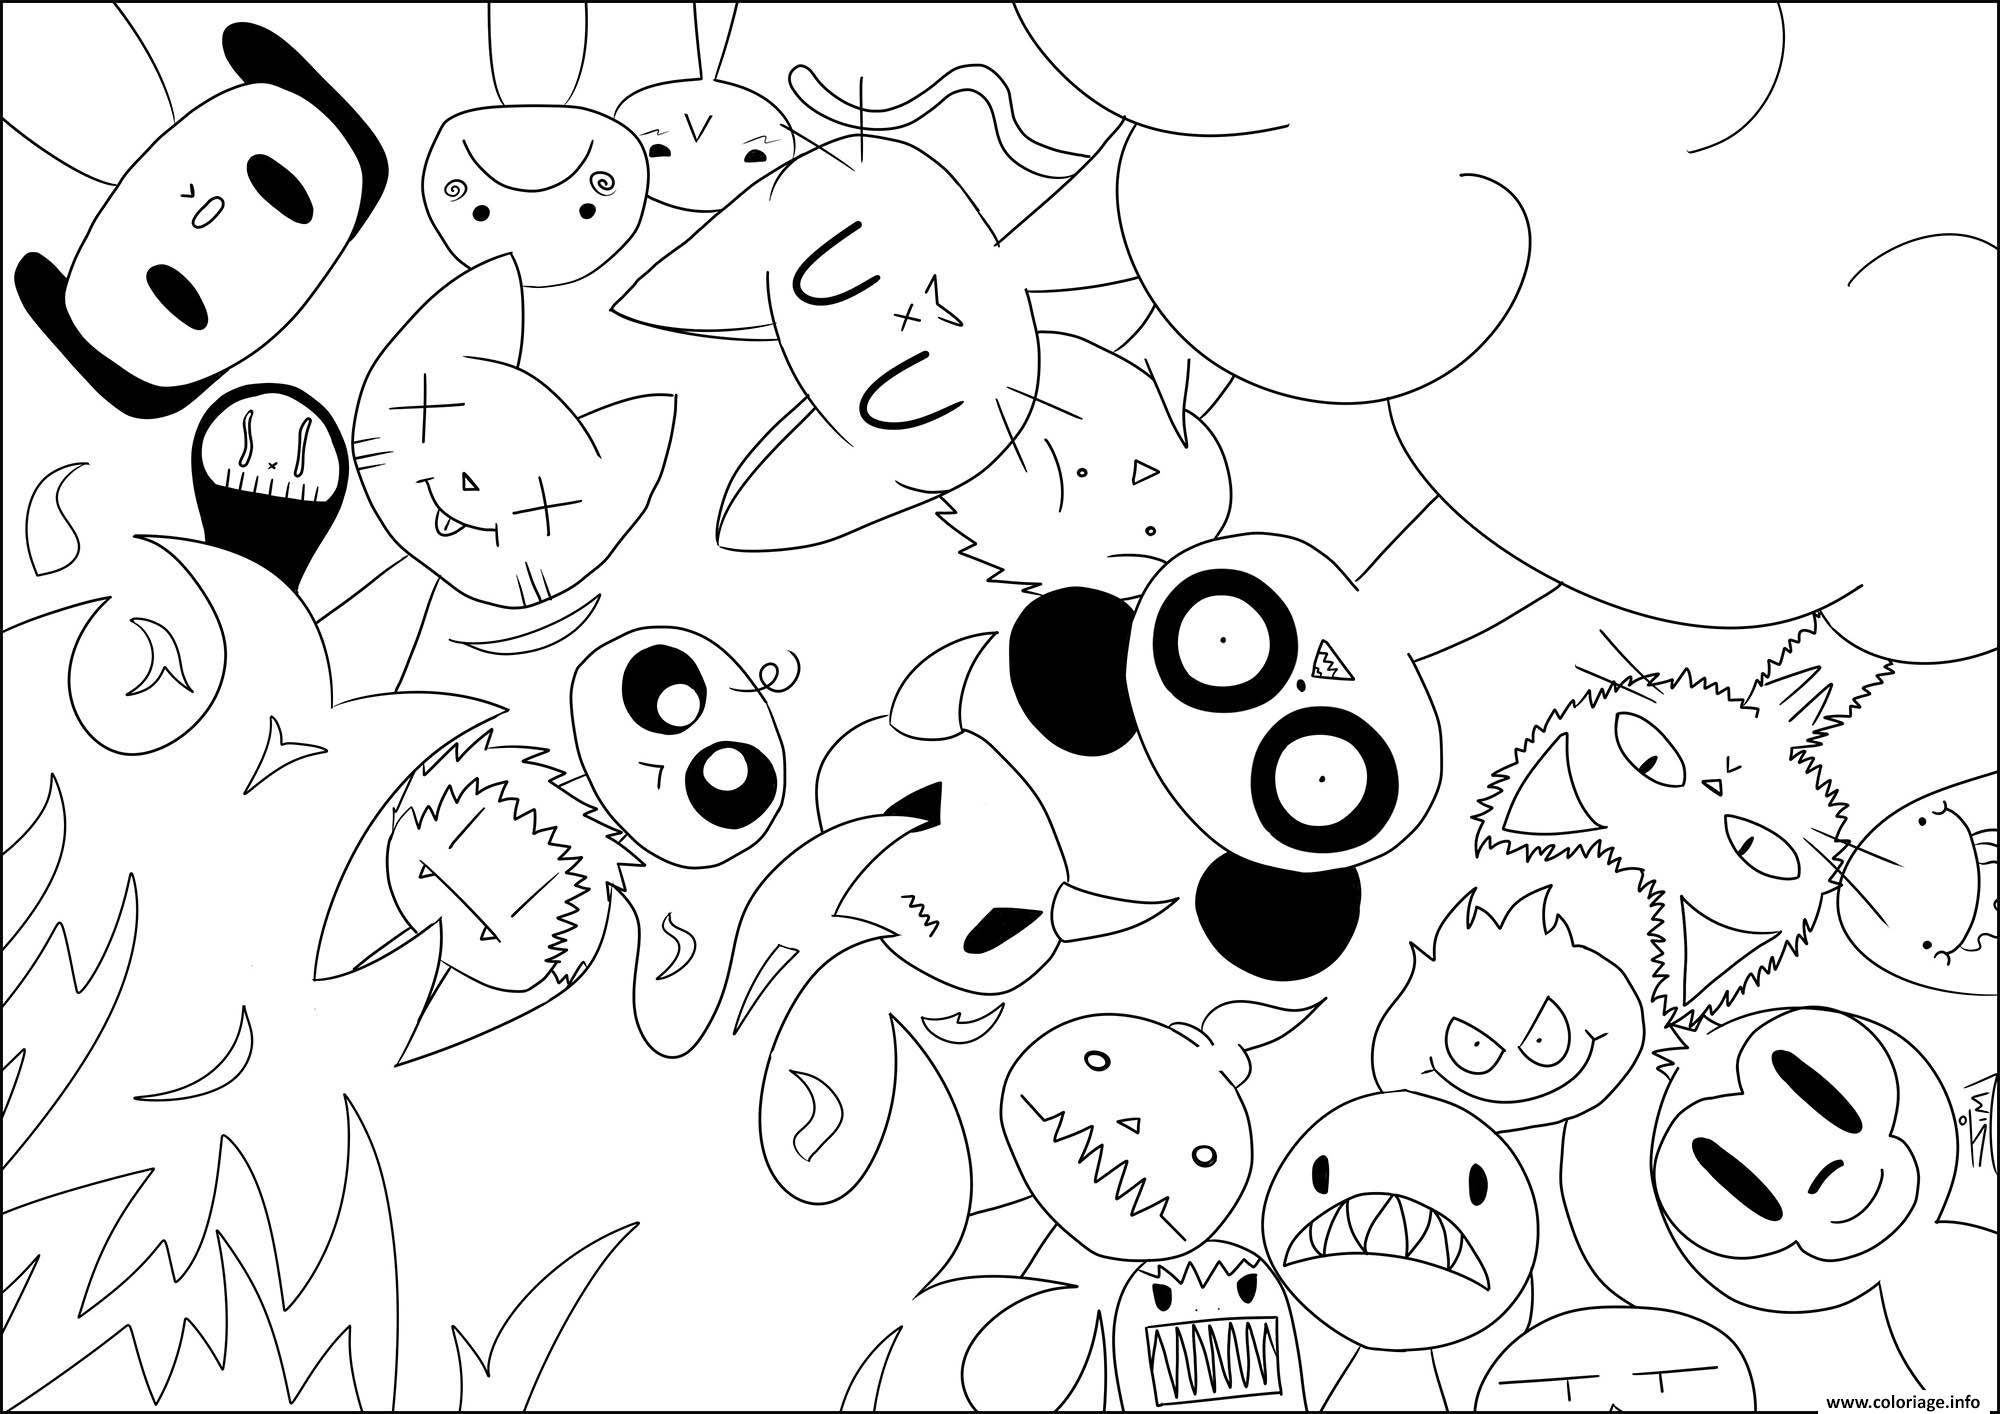 Coloriage Chocolat Kawaii.Coloriage Kawaii Paradis Enfer Par Jim Dessin